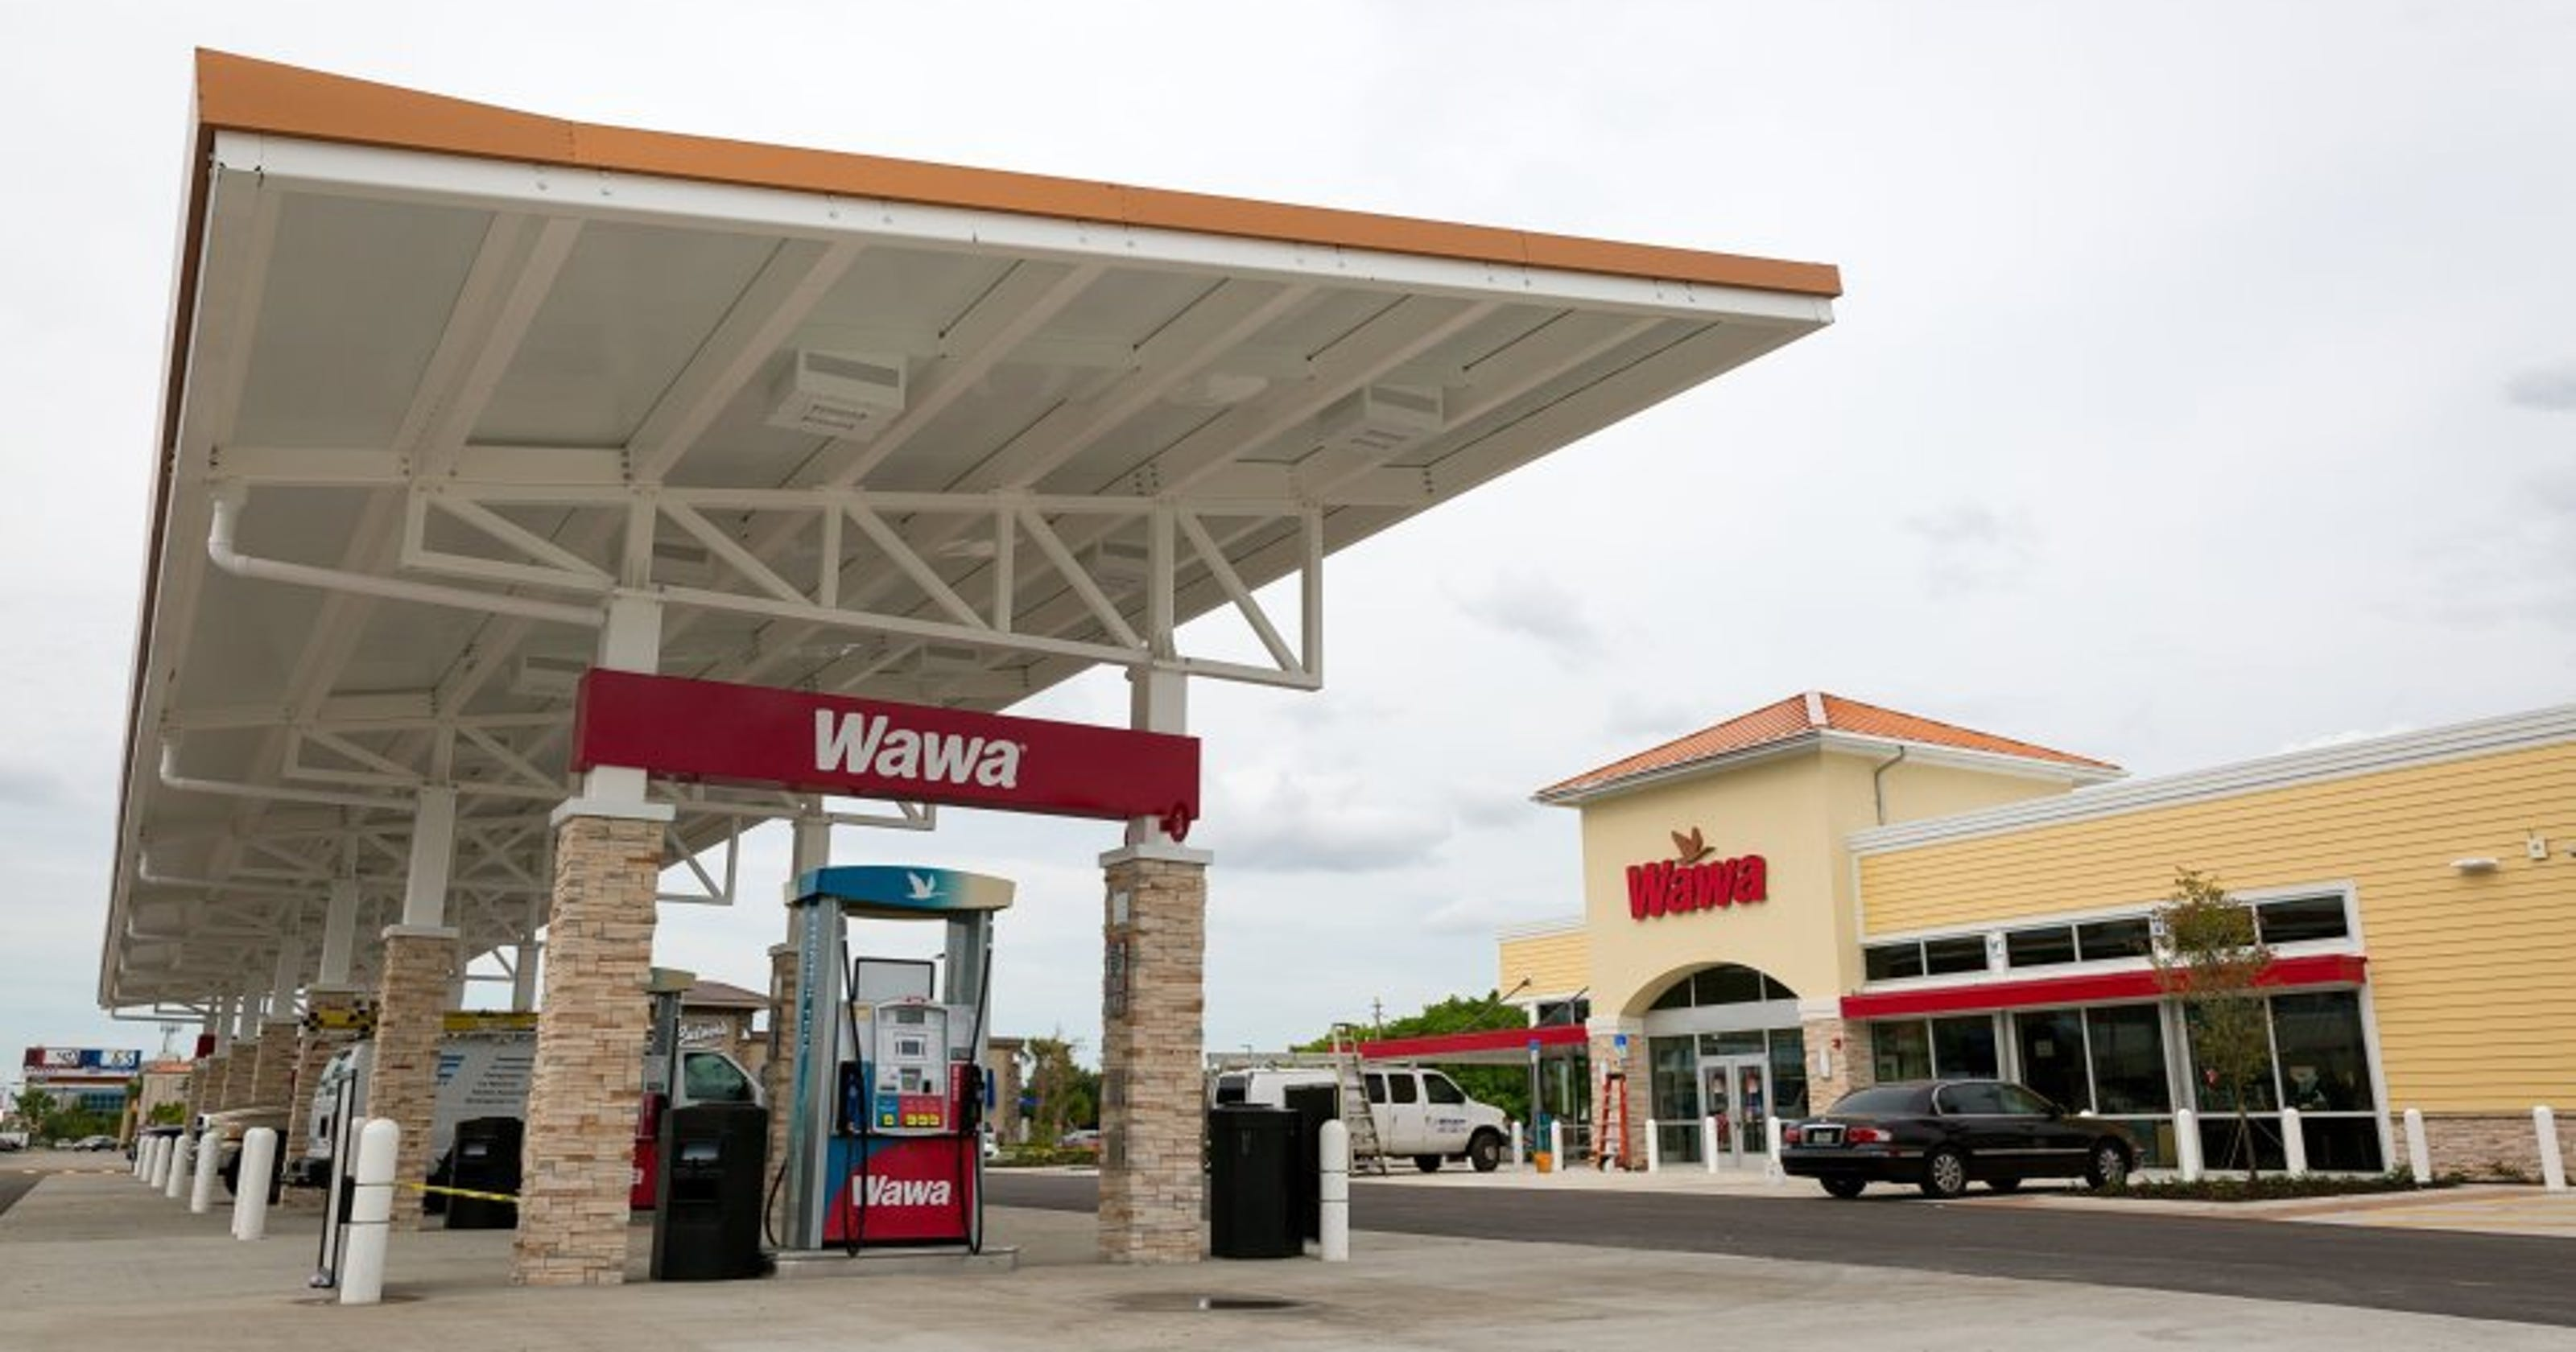 In the Know: Wawa, RaceTrac plan new projects in Collier County